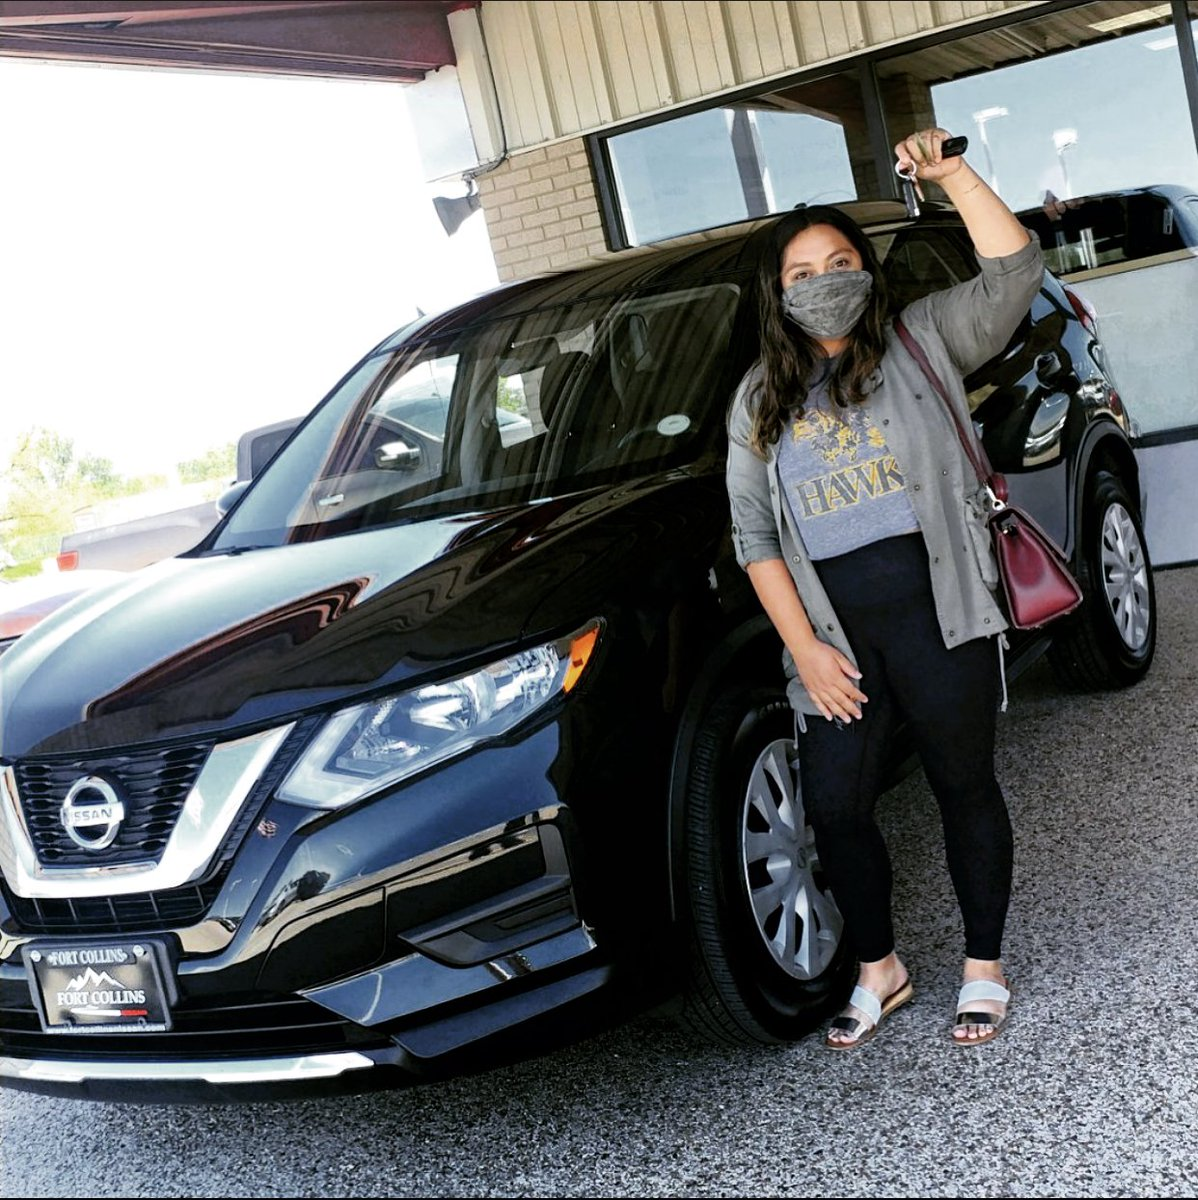 We hope you all had a lovely Memorial Day weekend! Thank you to Evelyn for coming to see us. We hope you're loving your #NissanRogue! We appreciate the opportunity to earn your business and are happy to welcome you to the #FoCo #Nissan family!pic.twitter.com/GKdoVGWkmy